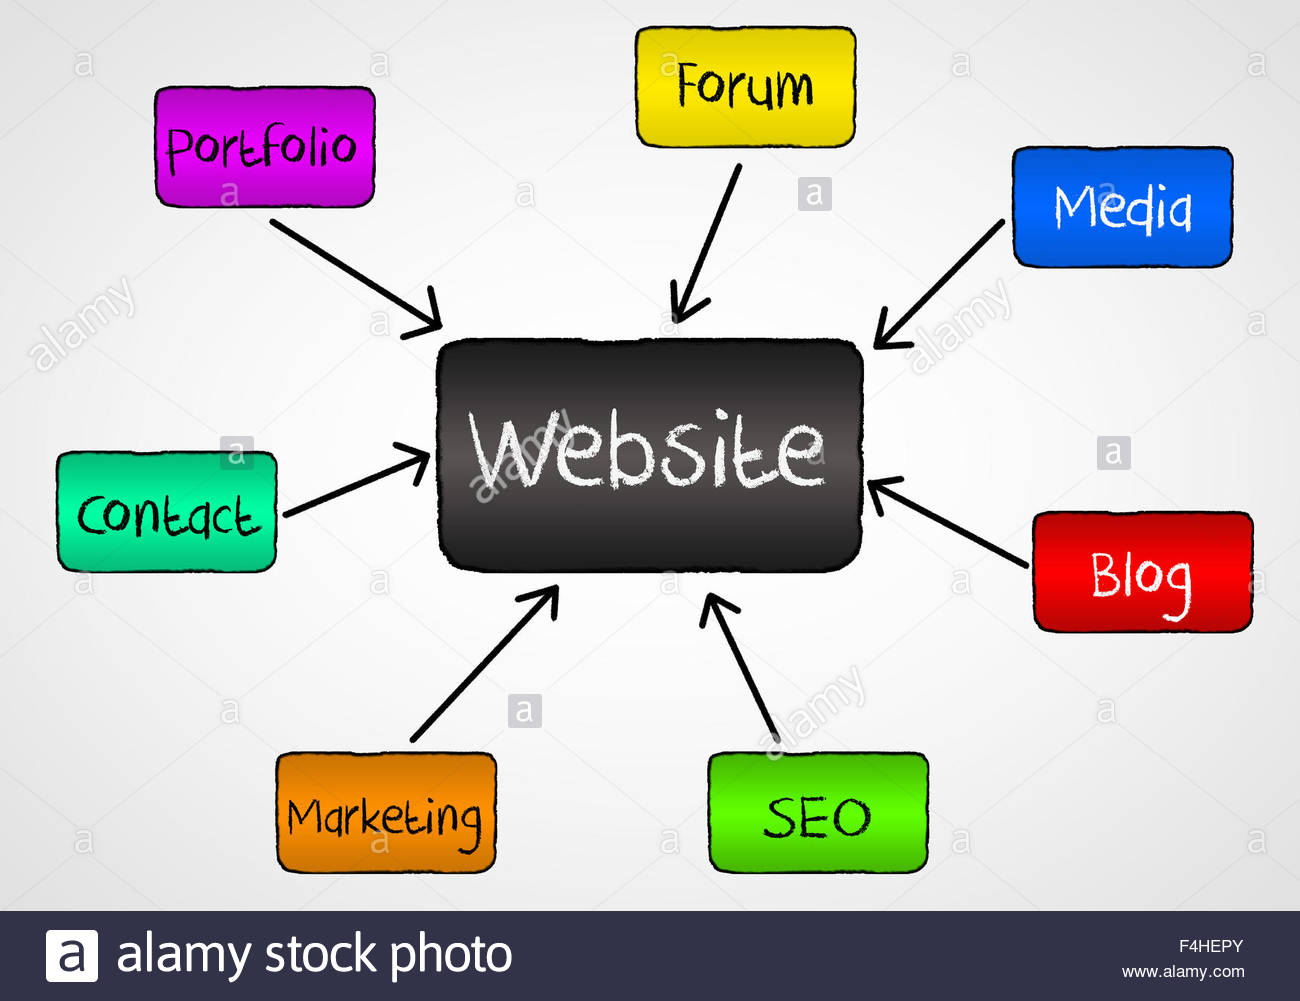 Website and Social Media structure design - Stock Image